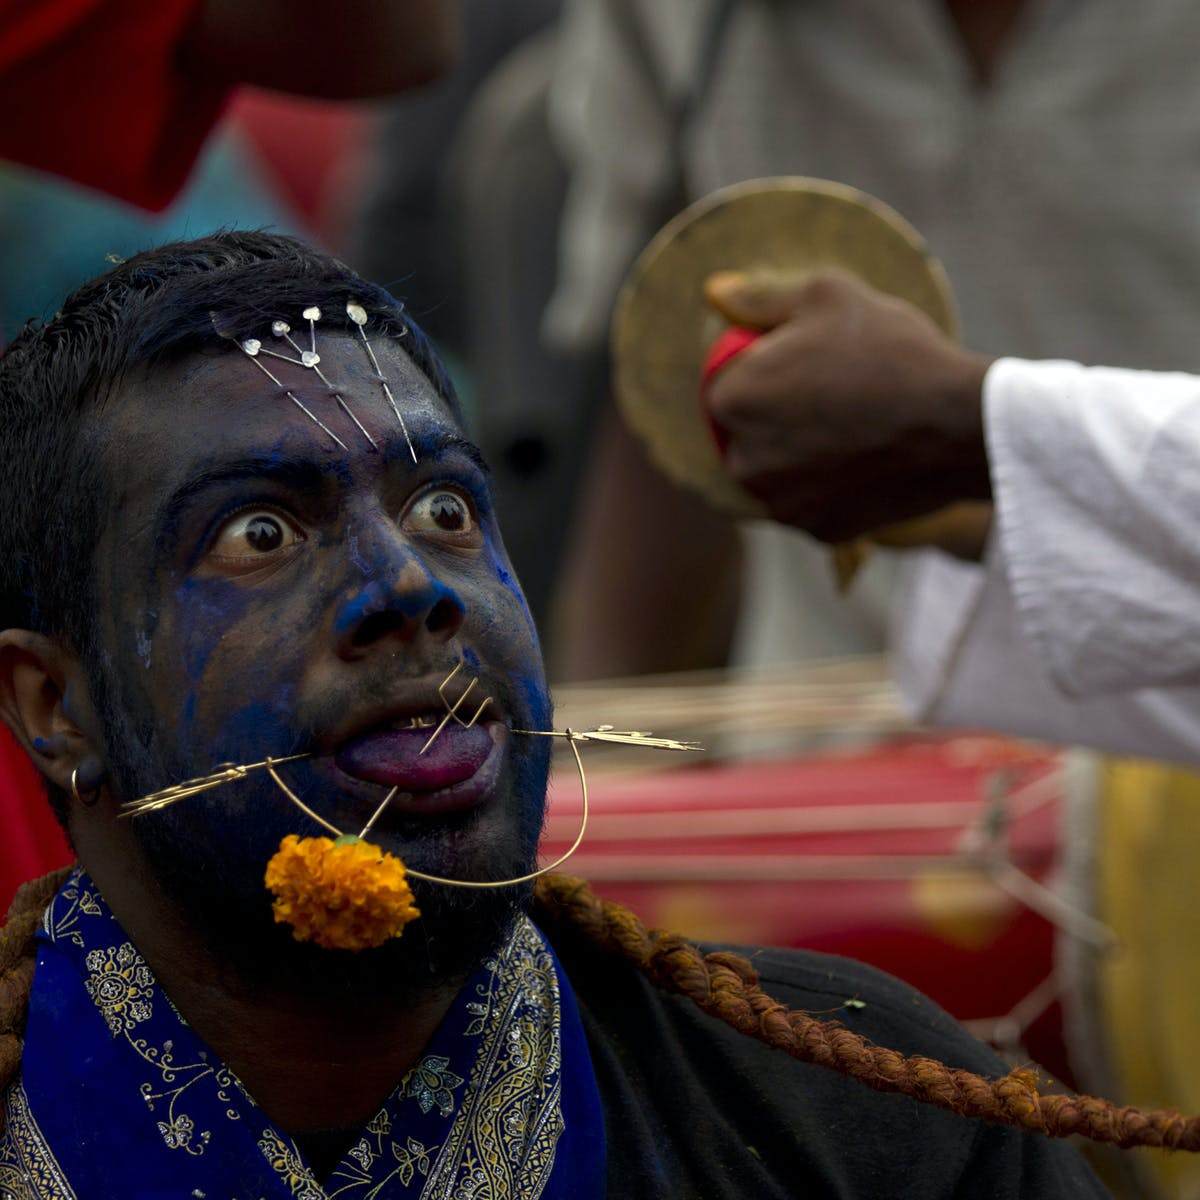 Behind the God-swapping in the South African Indian community [part 2]